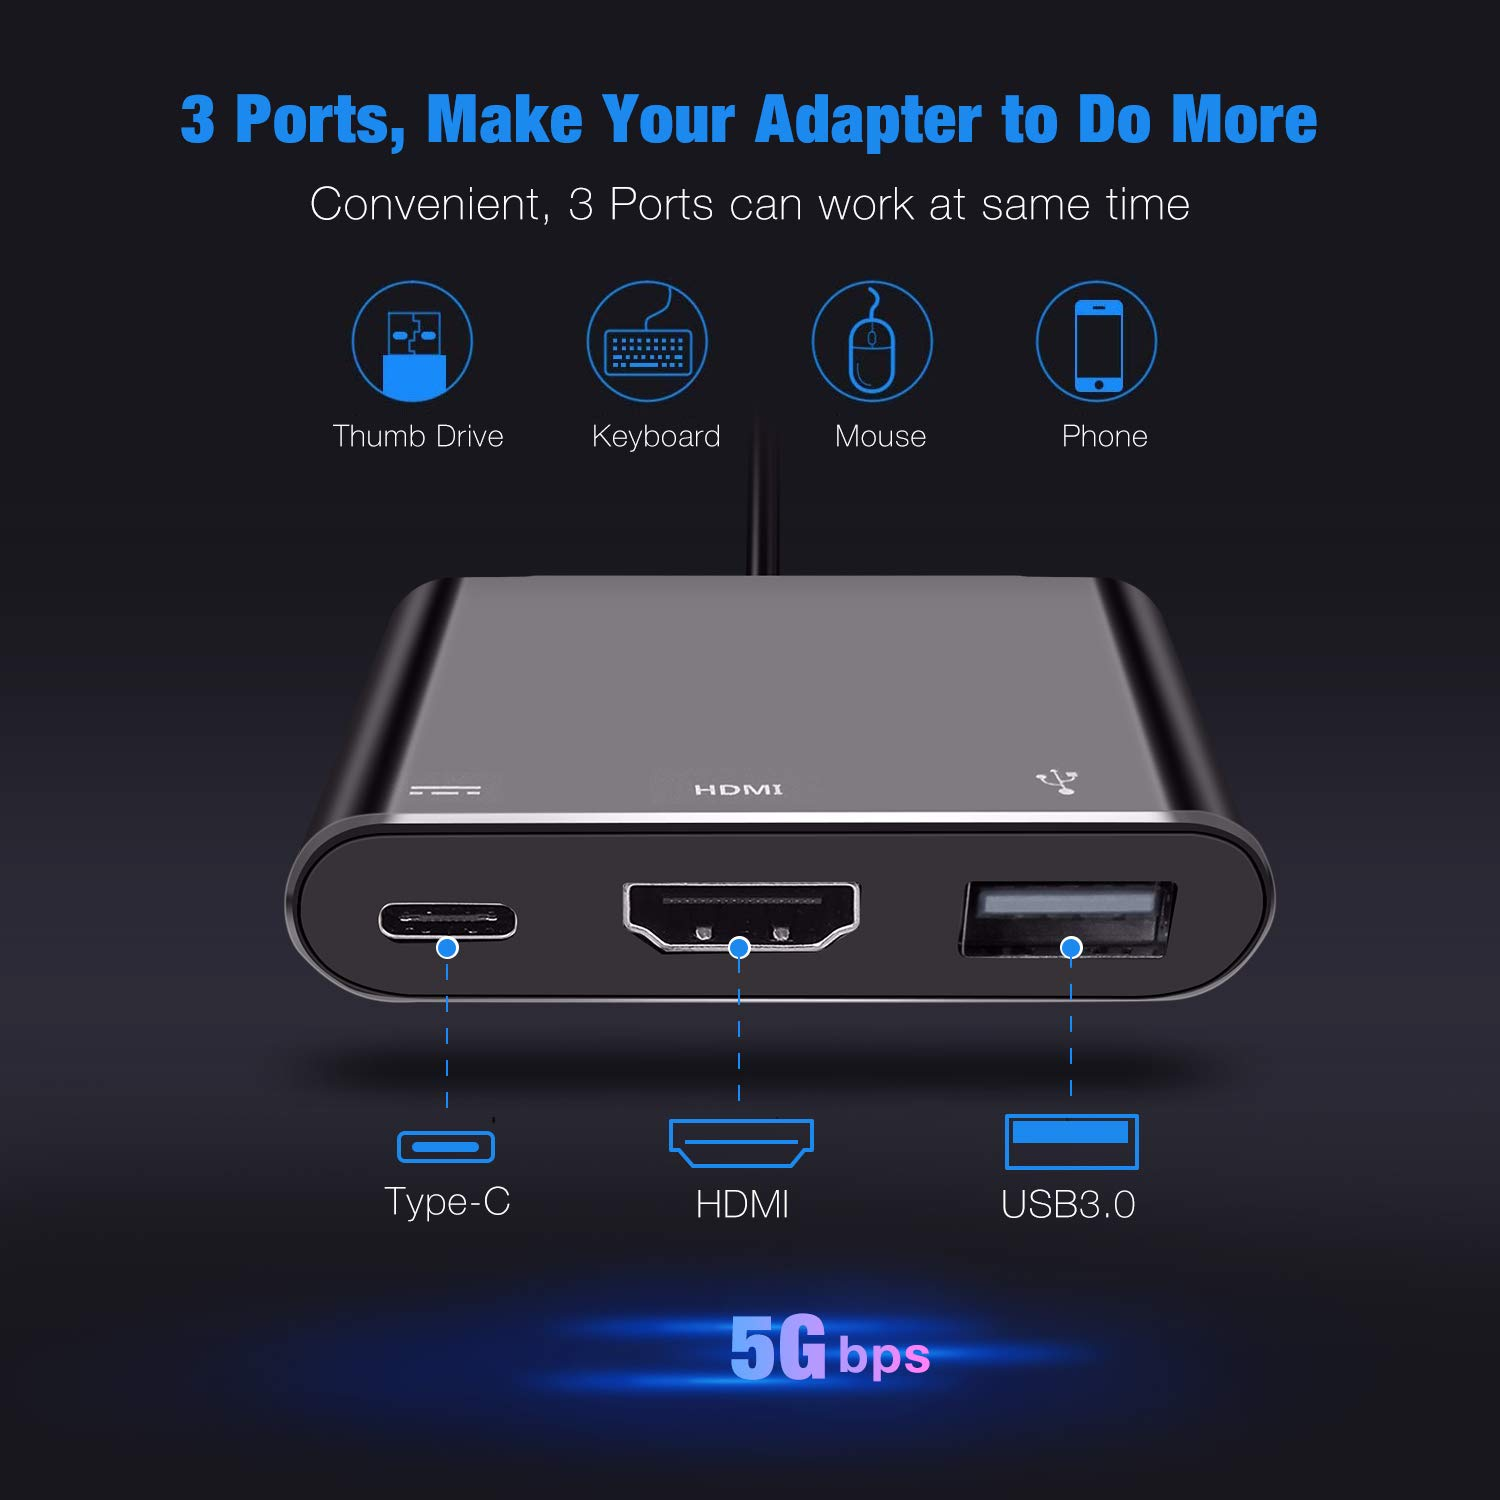 HDMI Type C Hub Adapter for Nintendo Switch,1080P USB C HDMI Converter Cable for Nintendo Switch - Support Macbook Pro/Samsung Galaxy S8 Plus/Google Pixel (Black)